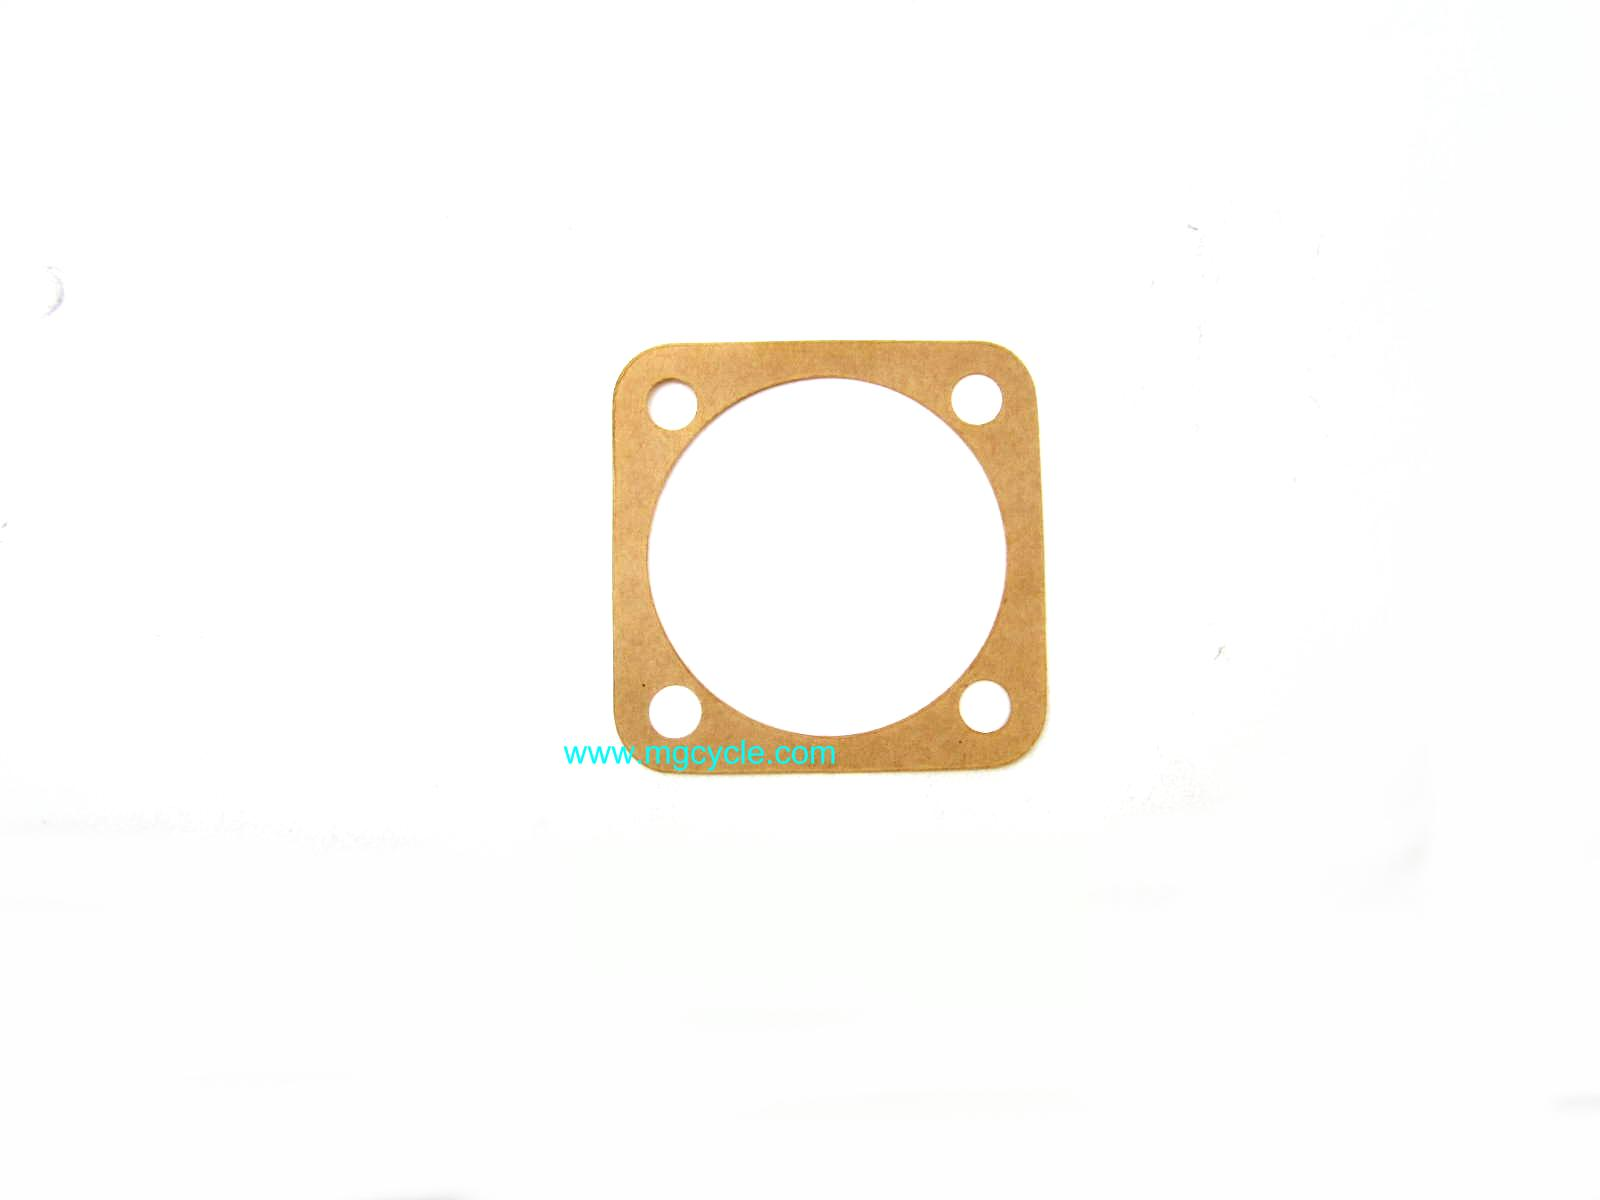 Final drive gasket, pinion carrier to case GU12352600